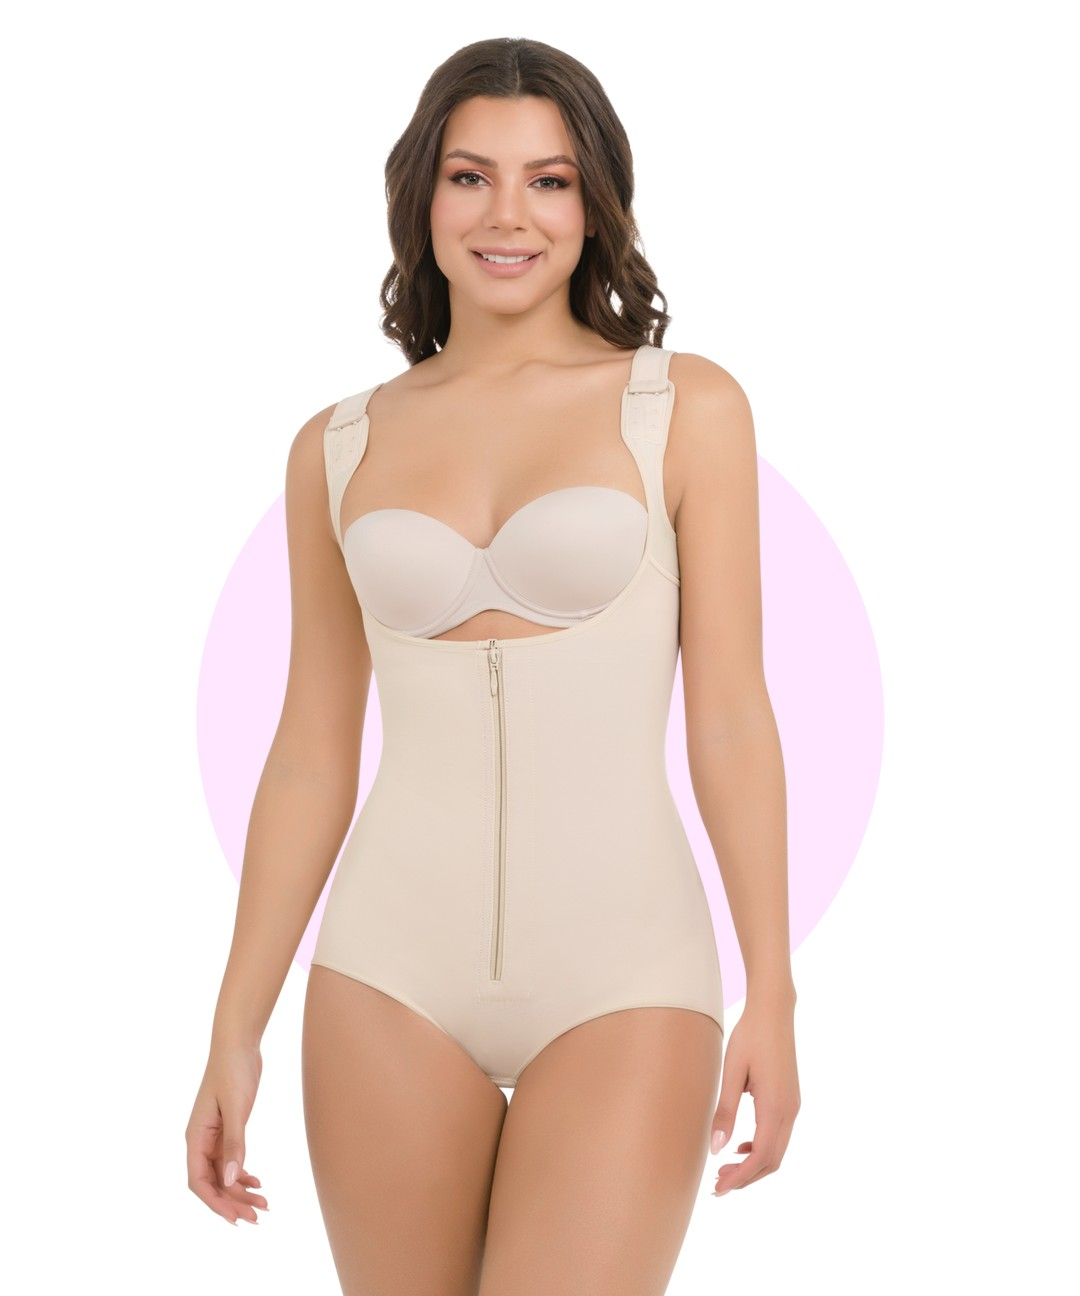 Thermal Body Shaper With Wide Straps - 385 style